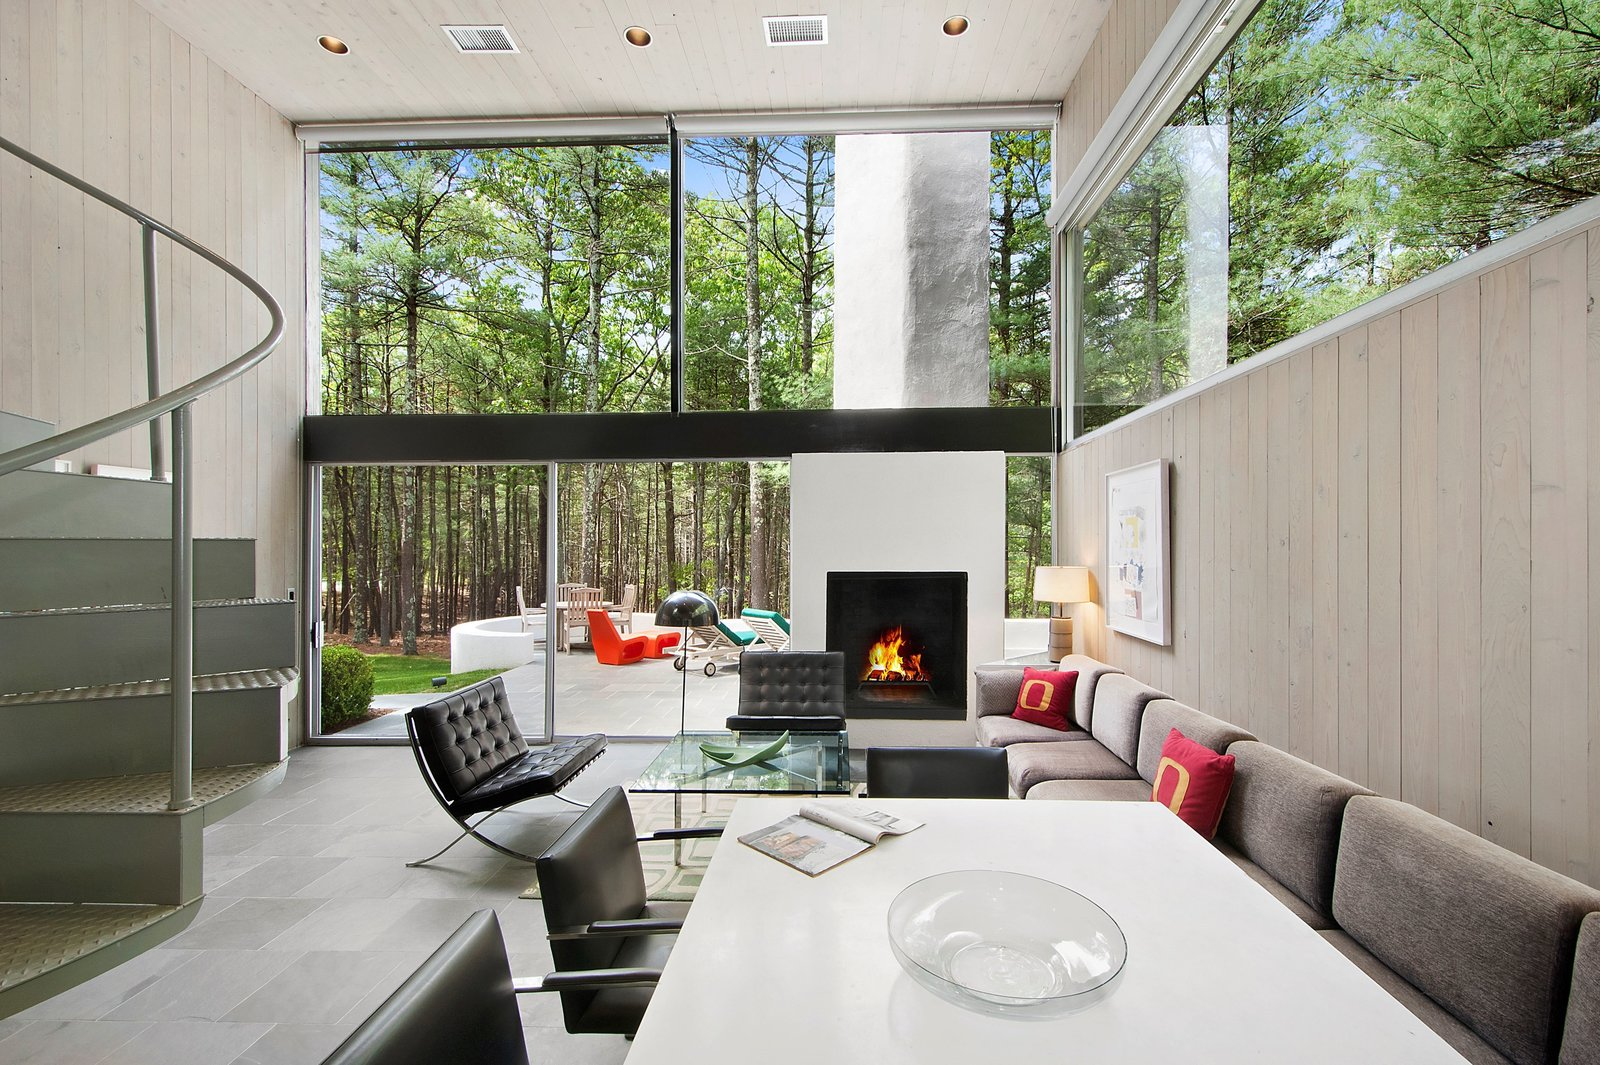 Living Room and Standard Layout Fireplace The first commissioned work by  47+ Midcentury Modern Homes Across America by Luke Hopping